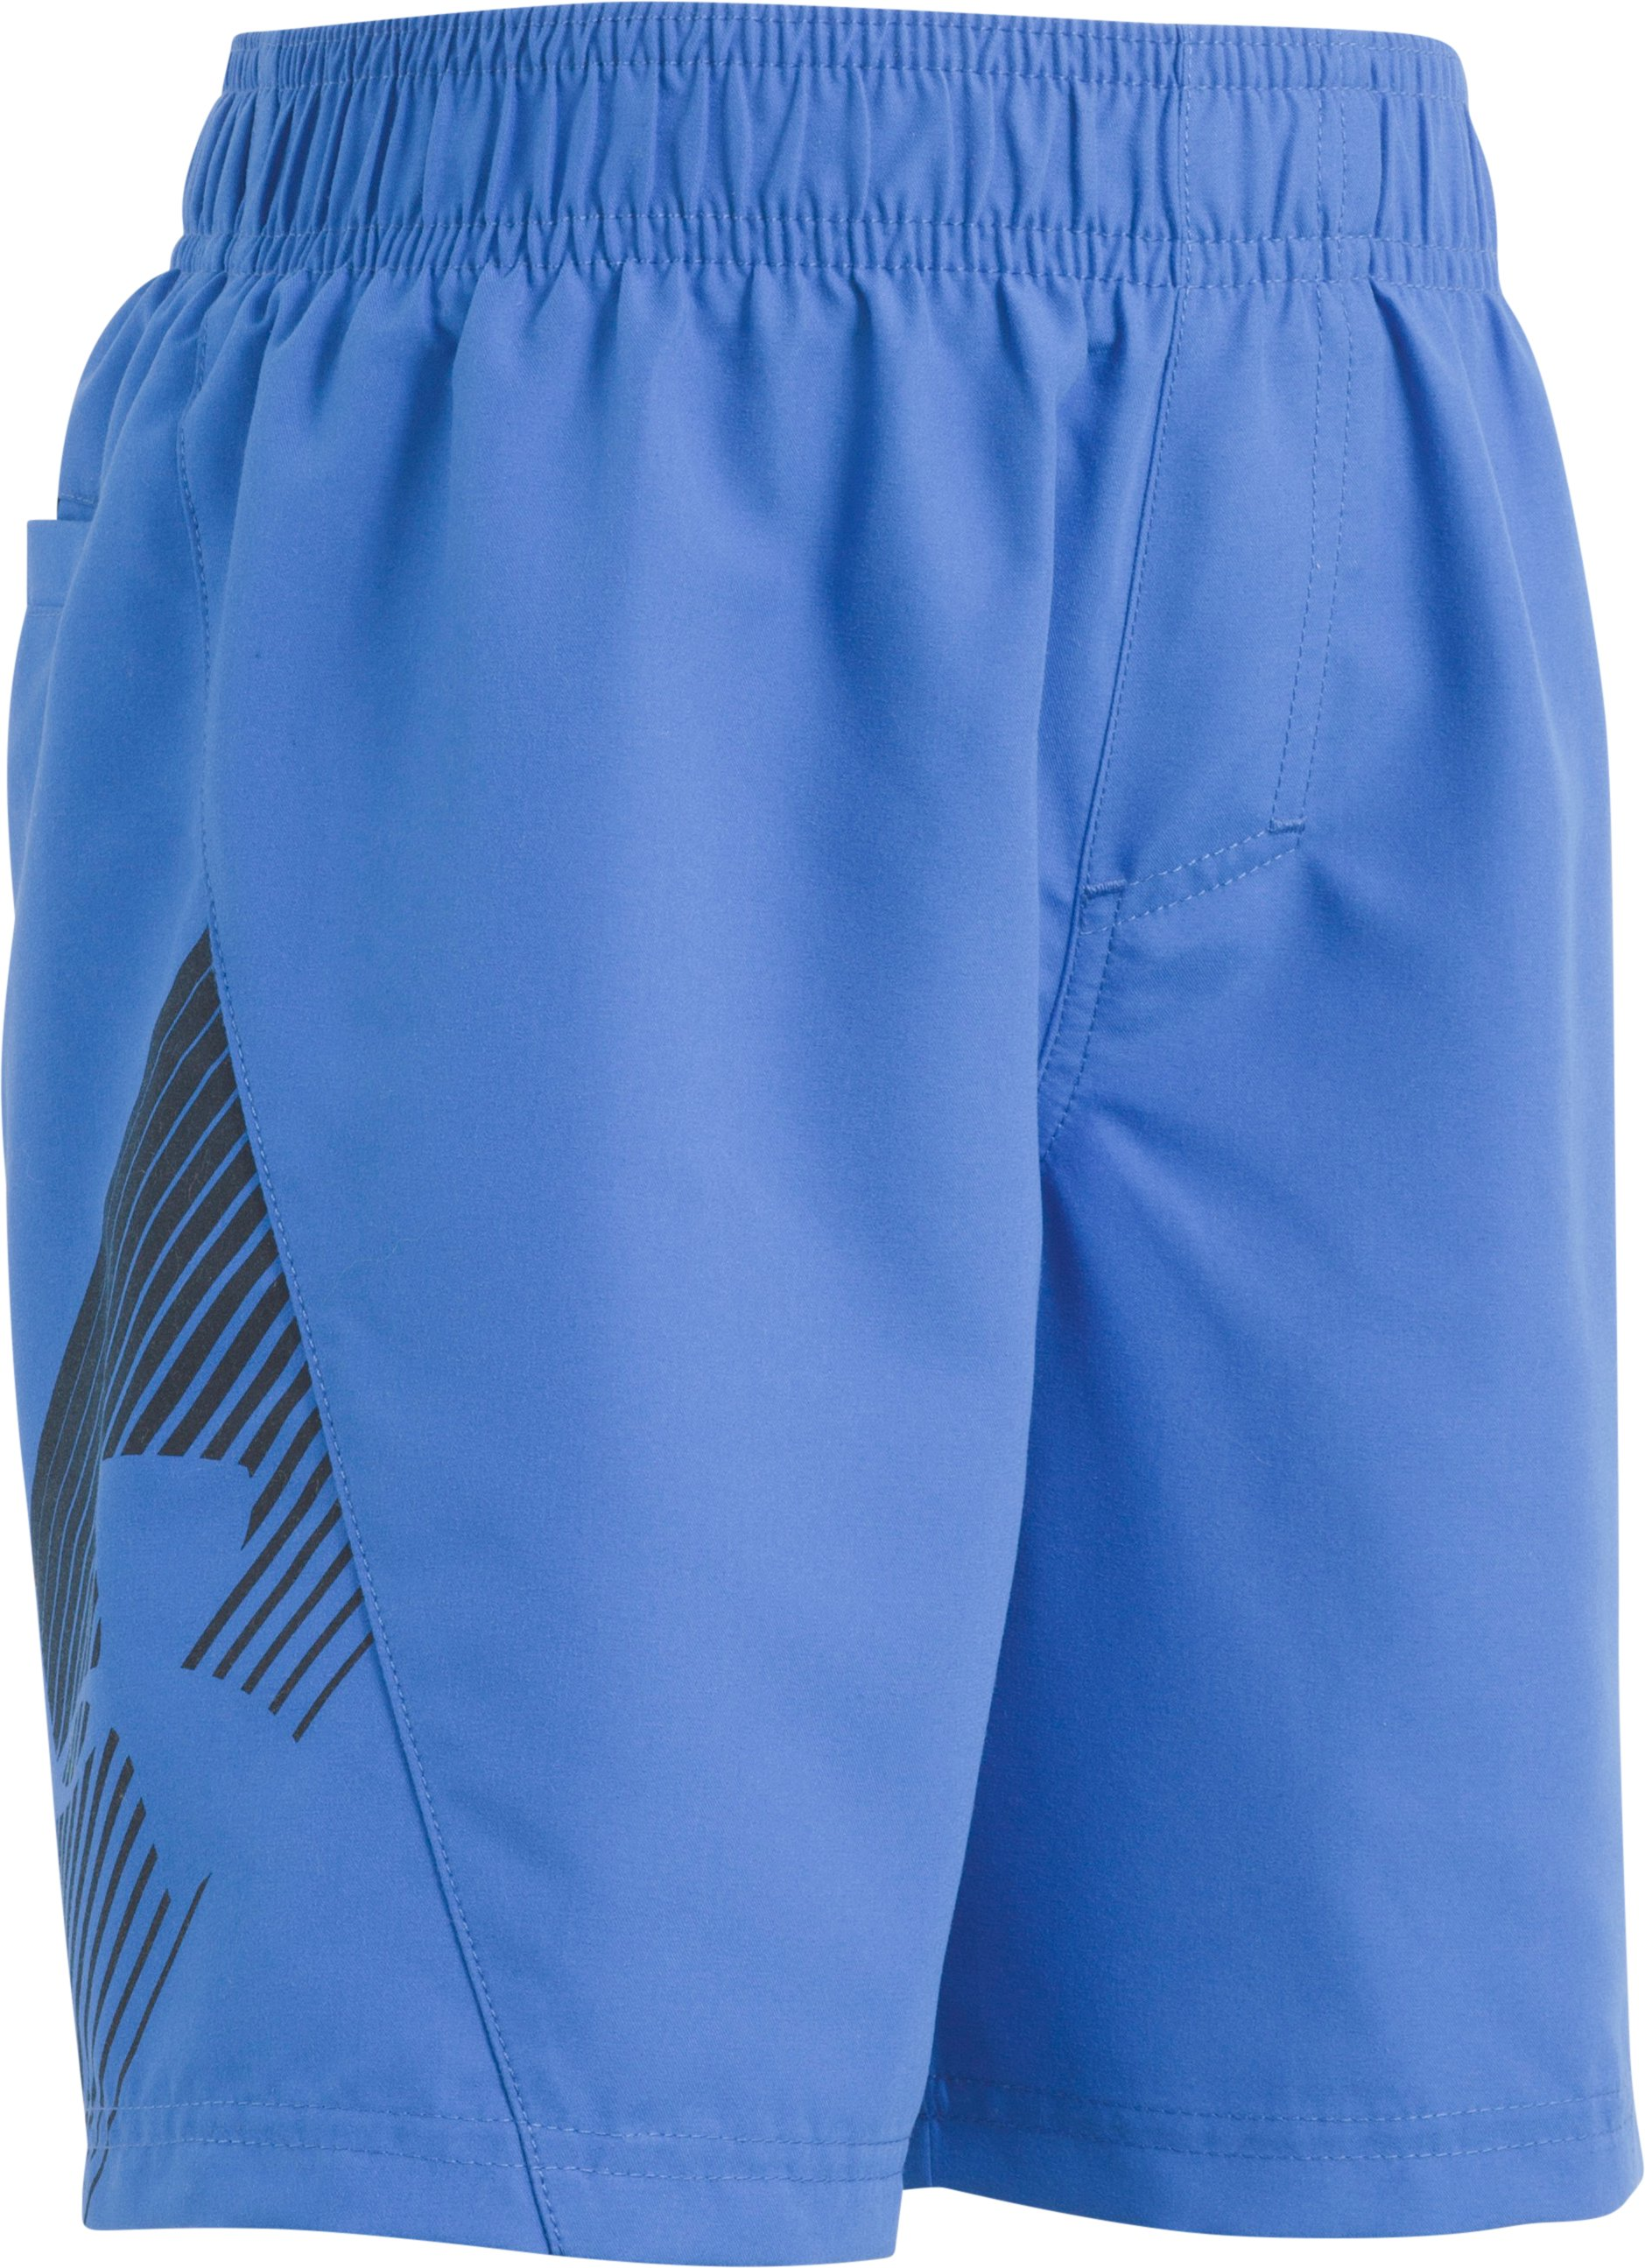 Boys' Pre-School UA Entry Solid Boardshorts, ULTRA BLUE, Laydown